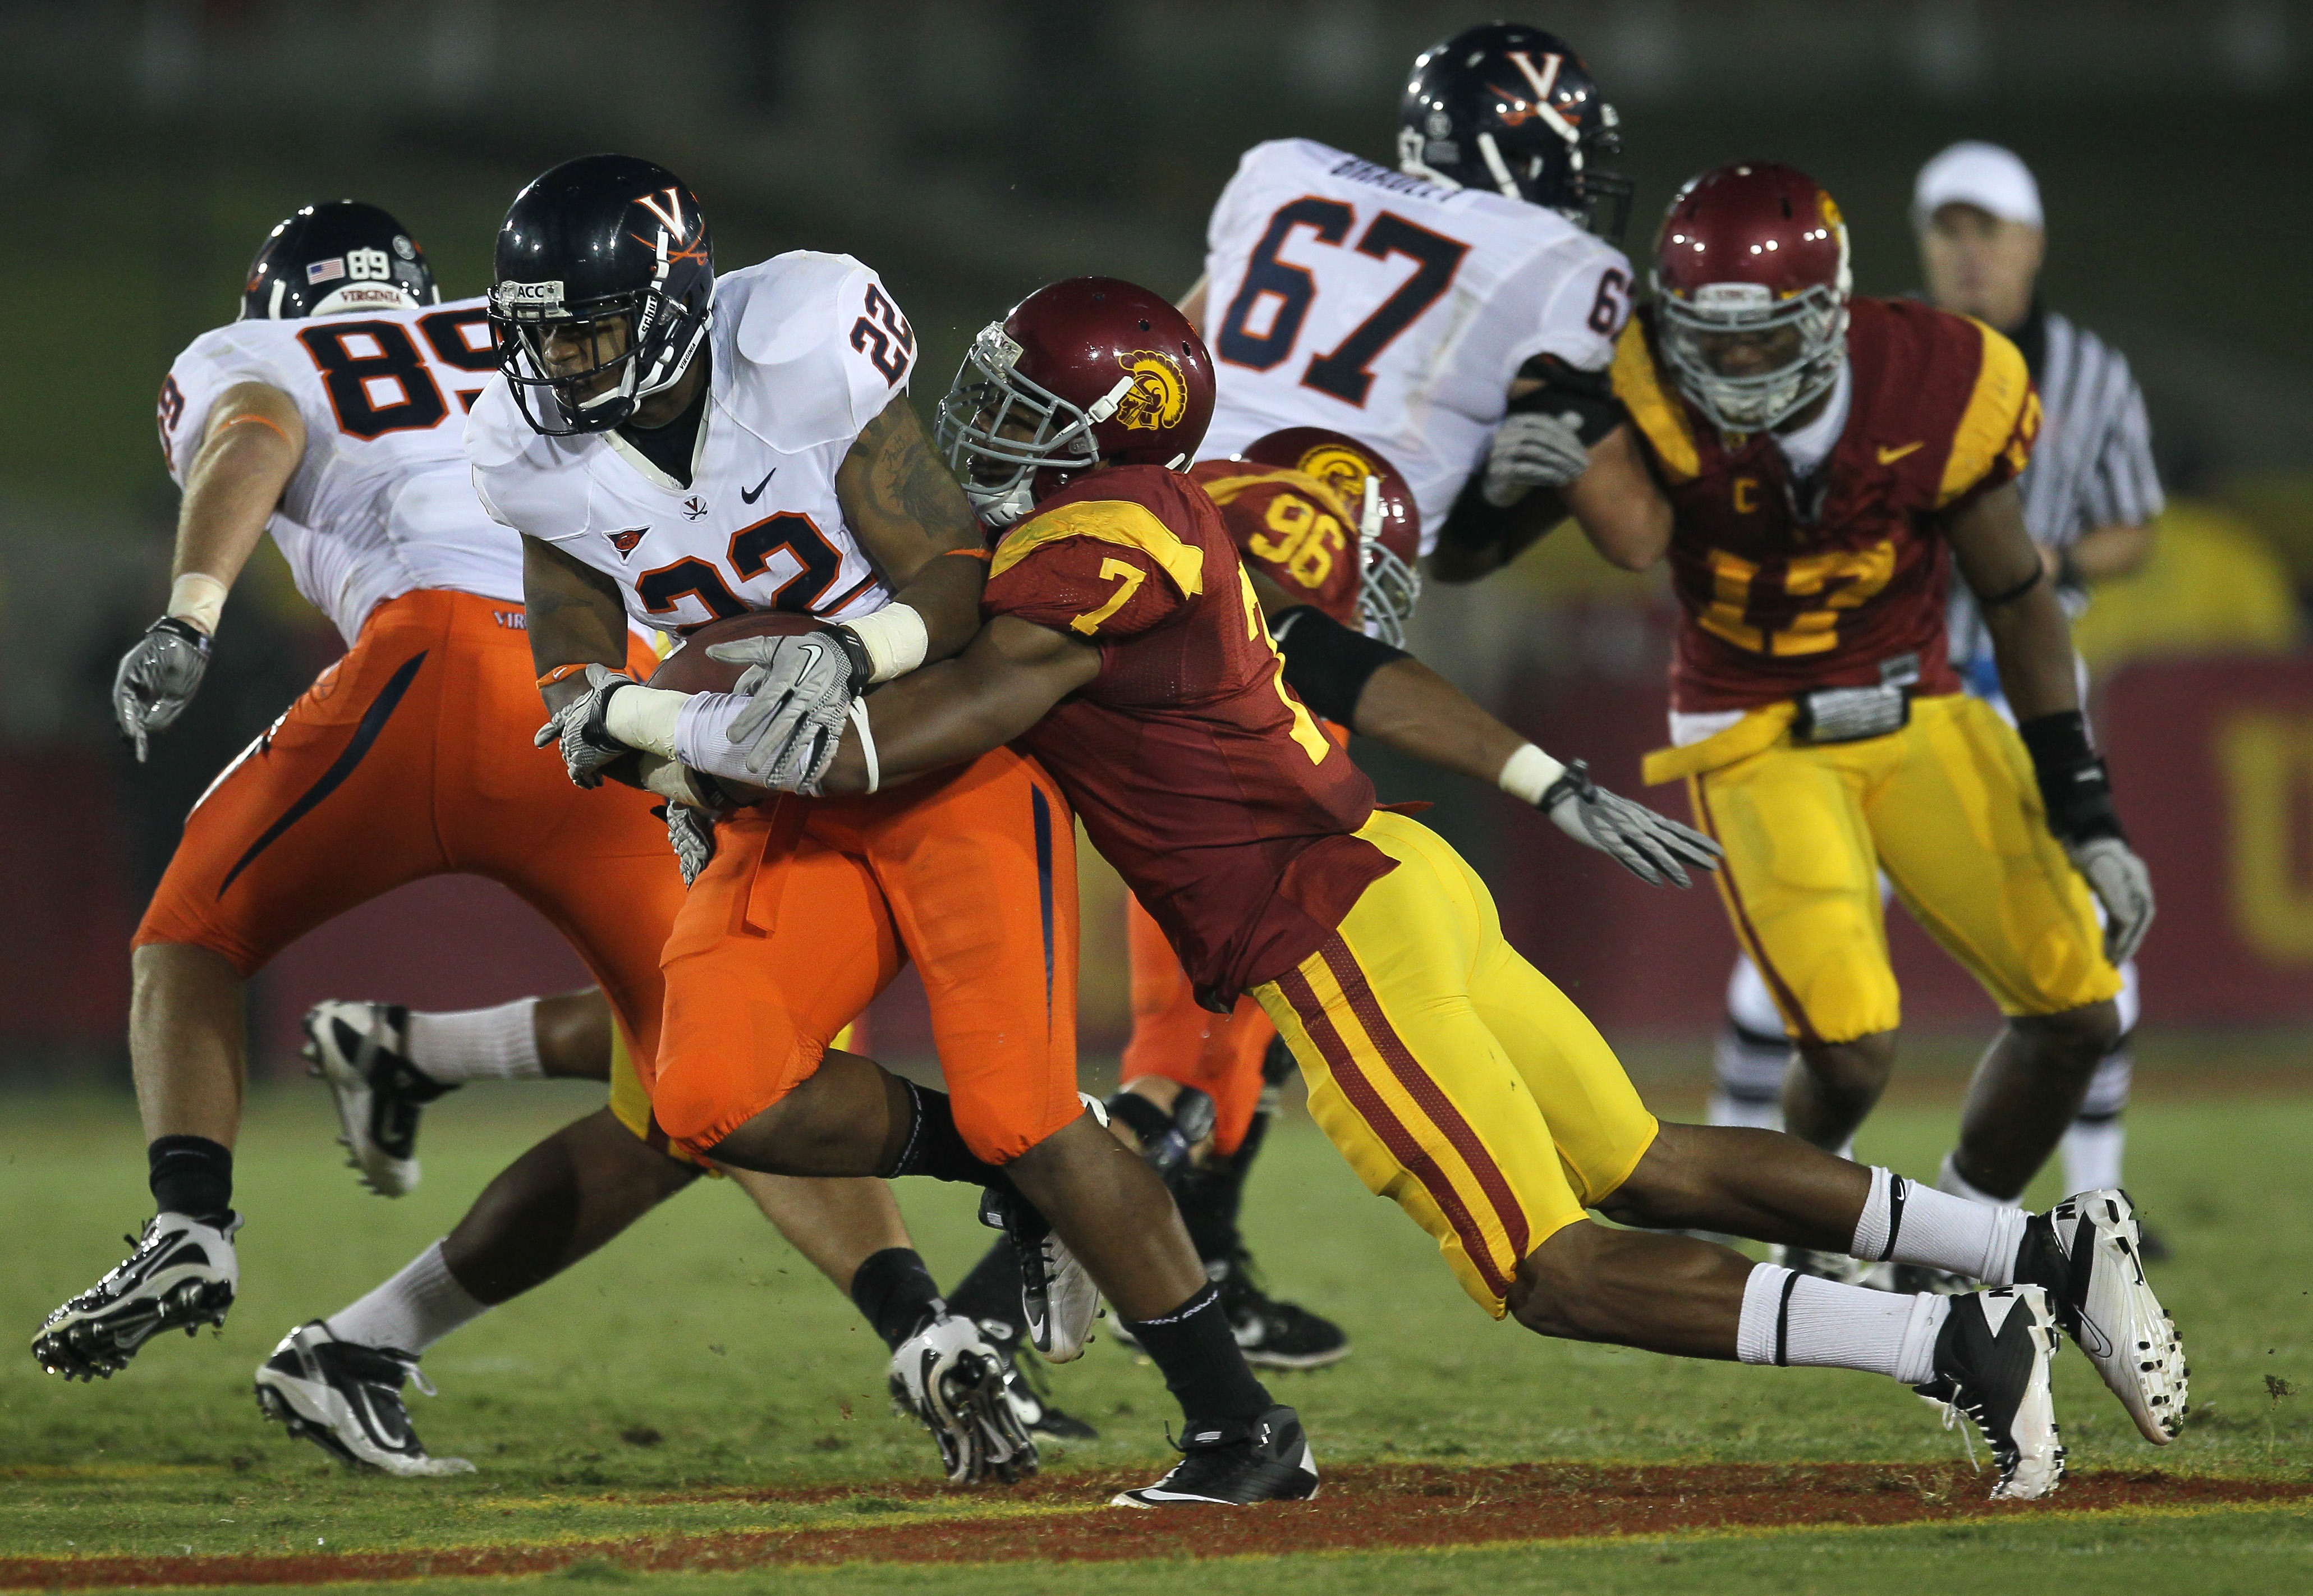 LOS ANGELES, CA - SEPTEMBER 11:  Safety T.J. McDonald #7 of the USC Trojans tackles running back Keith Payne #22 of the Virginia Cavaliers at Los Angeles Memorial Coliseum on September 11, 2010 in Los Angeles, California.  (Photo by Stephen Dunn/Getty Ima